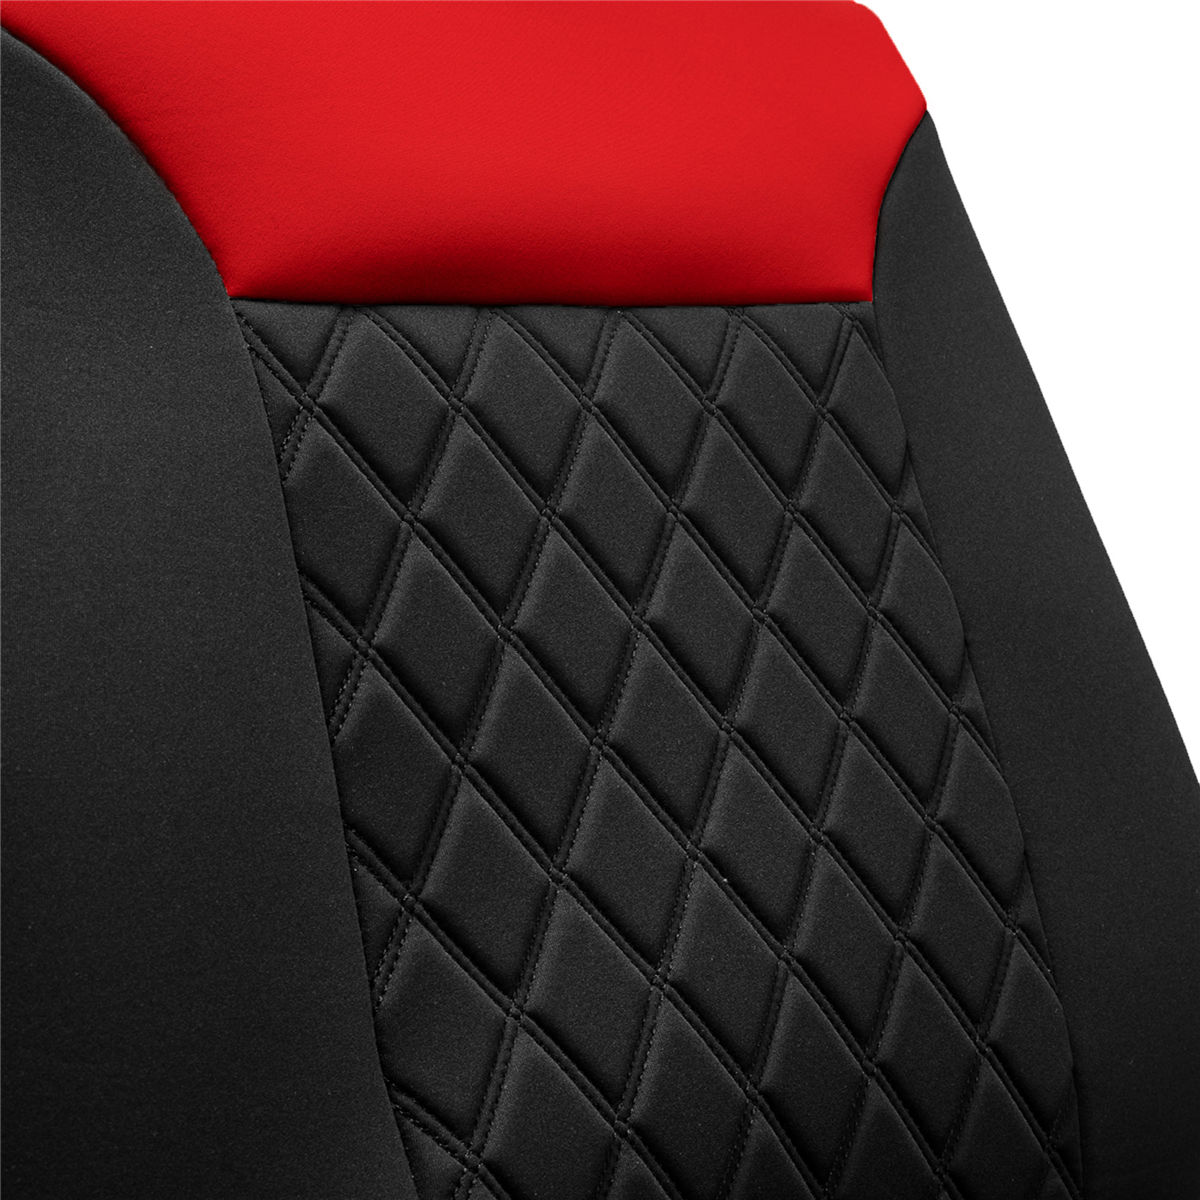 Neosupreme Quality Car Seat Cushions - Front material